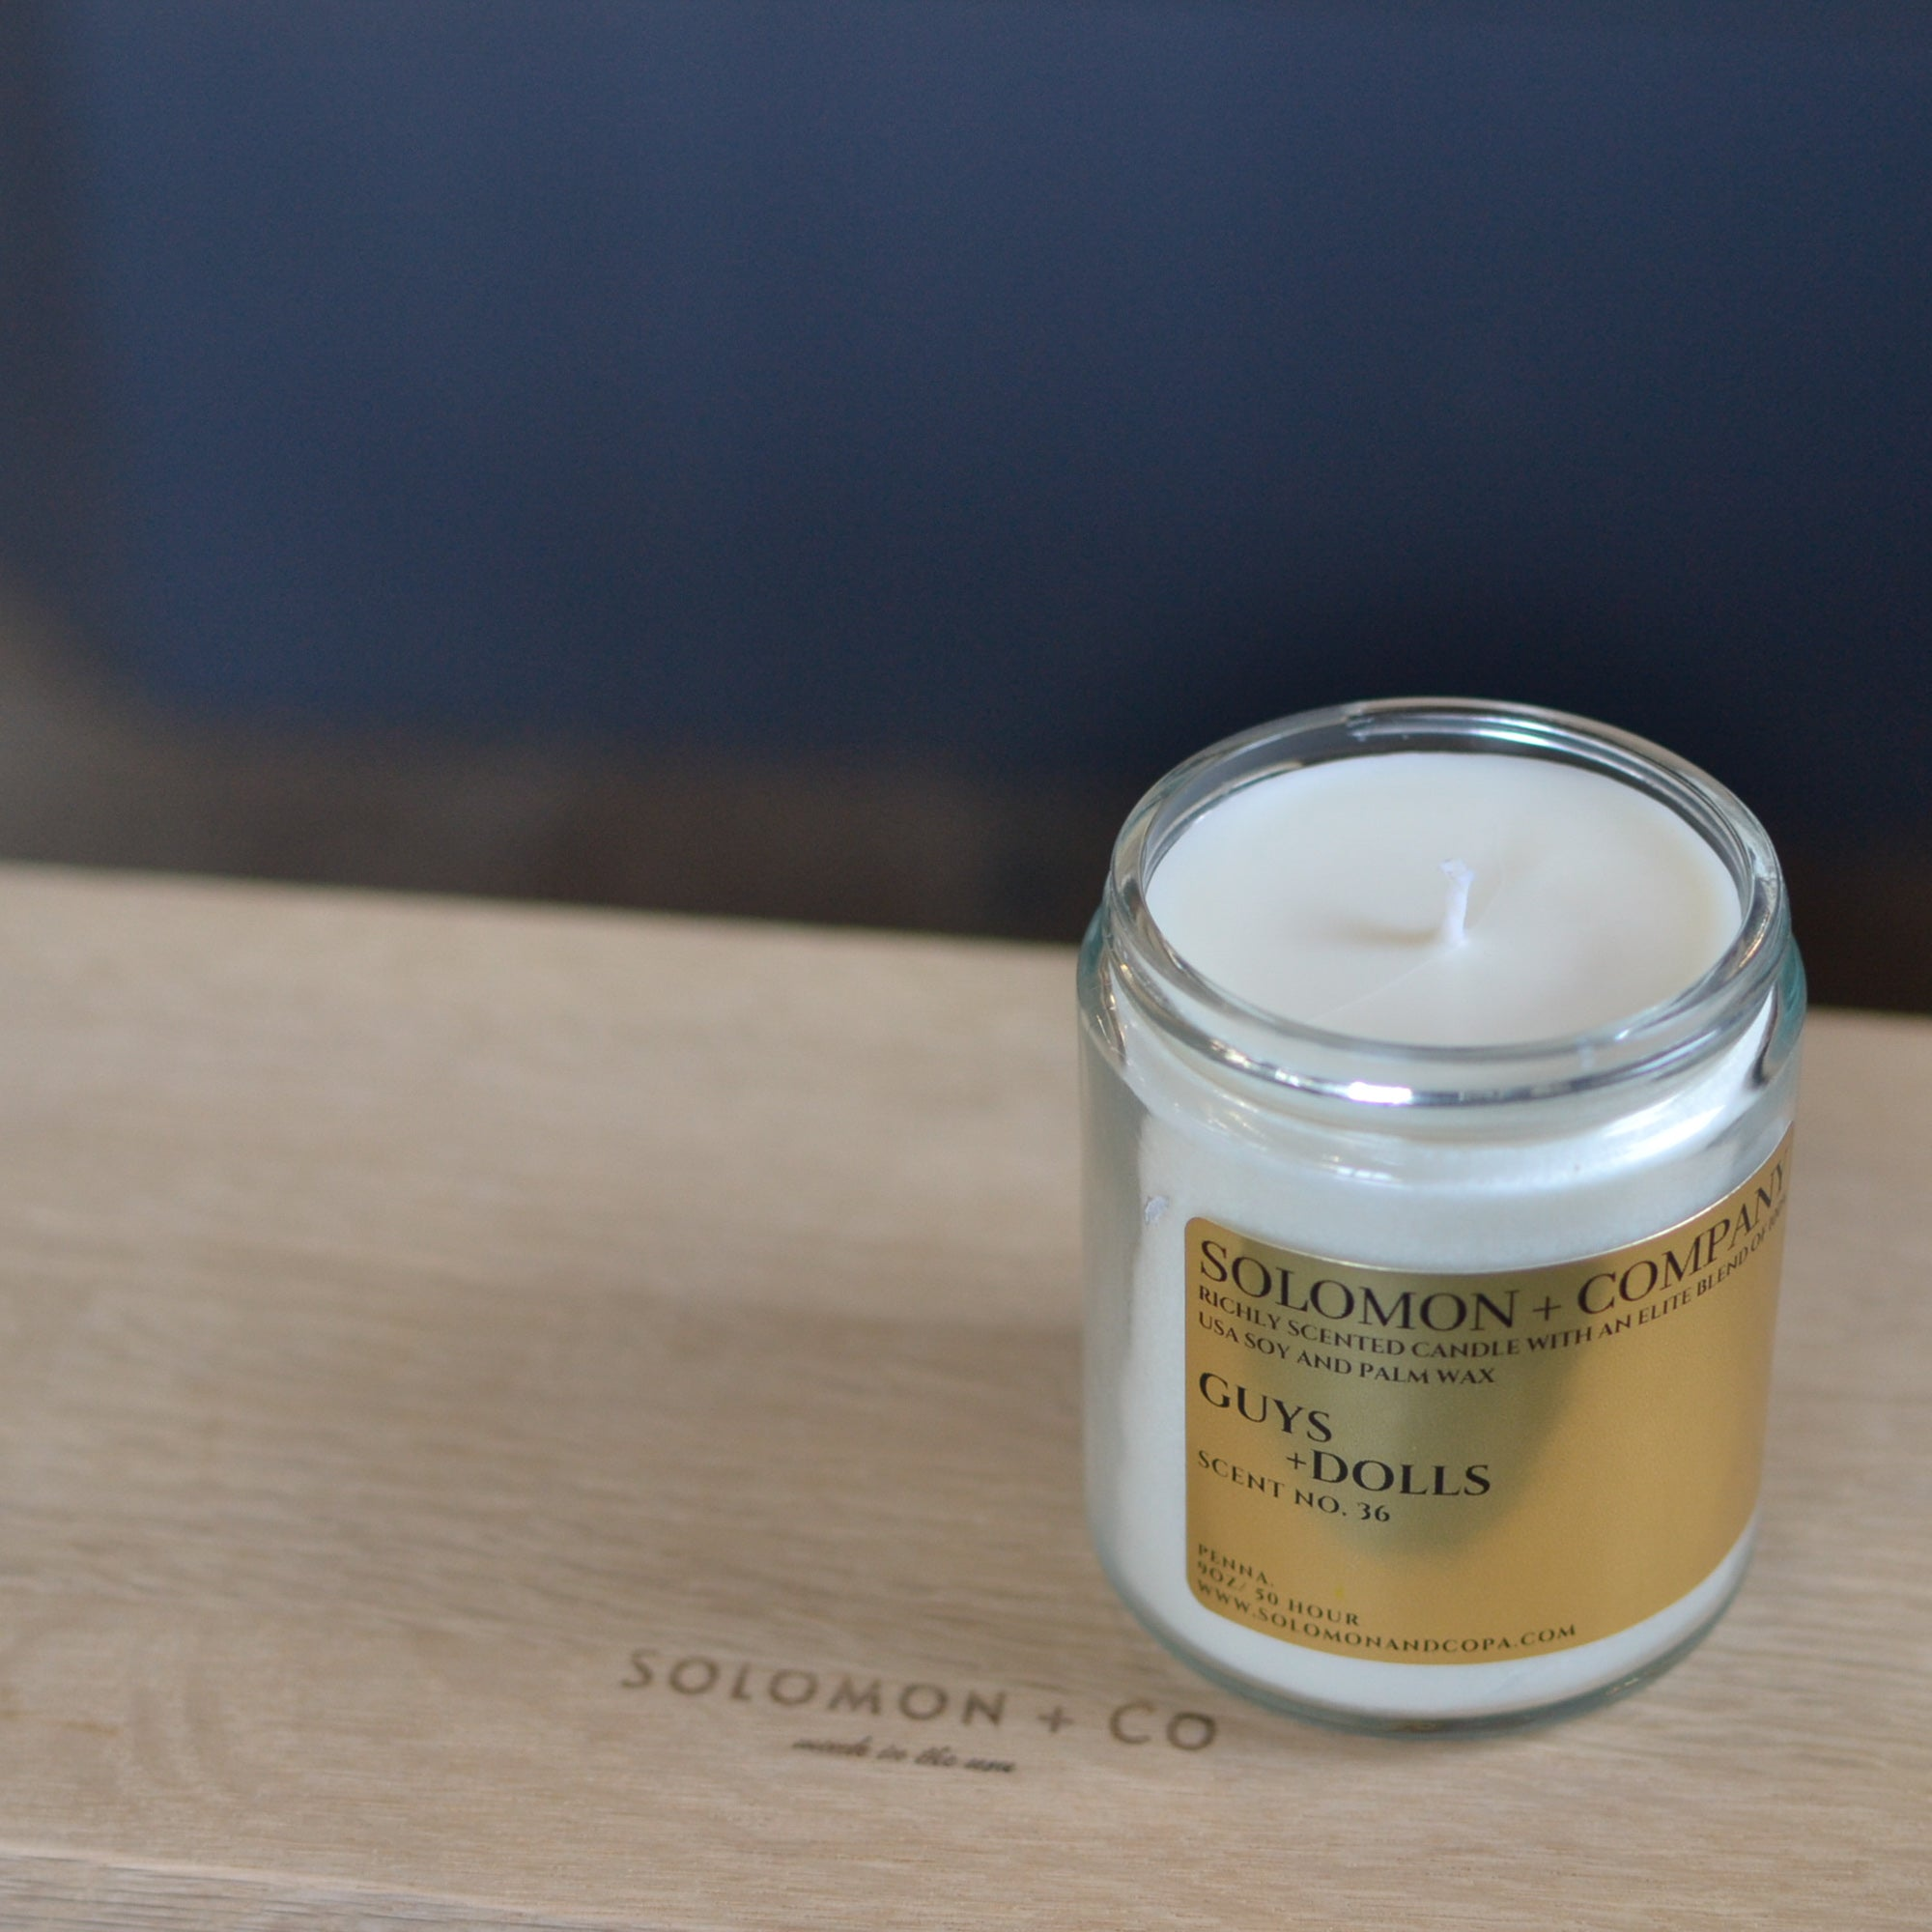 Guys and Dolls Soy Candle Collection